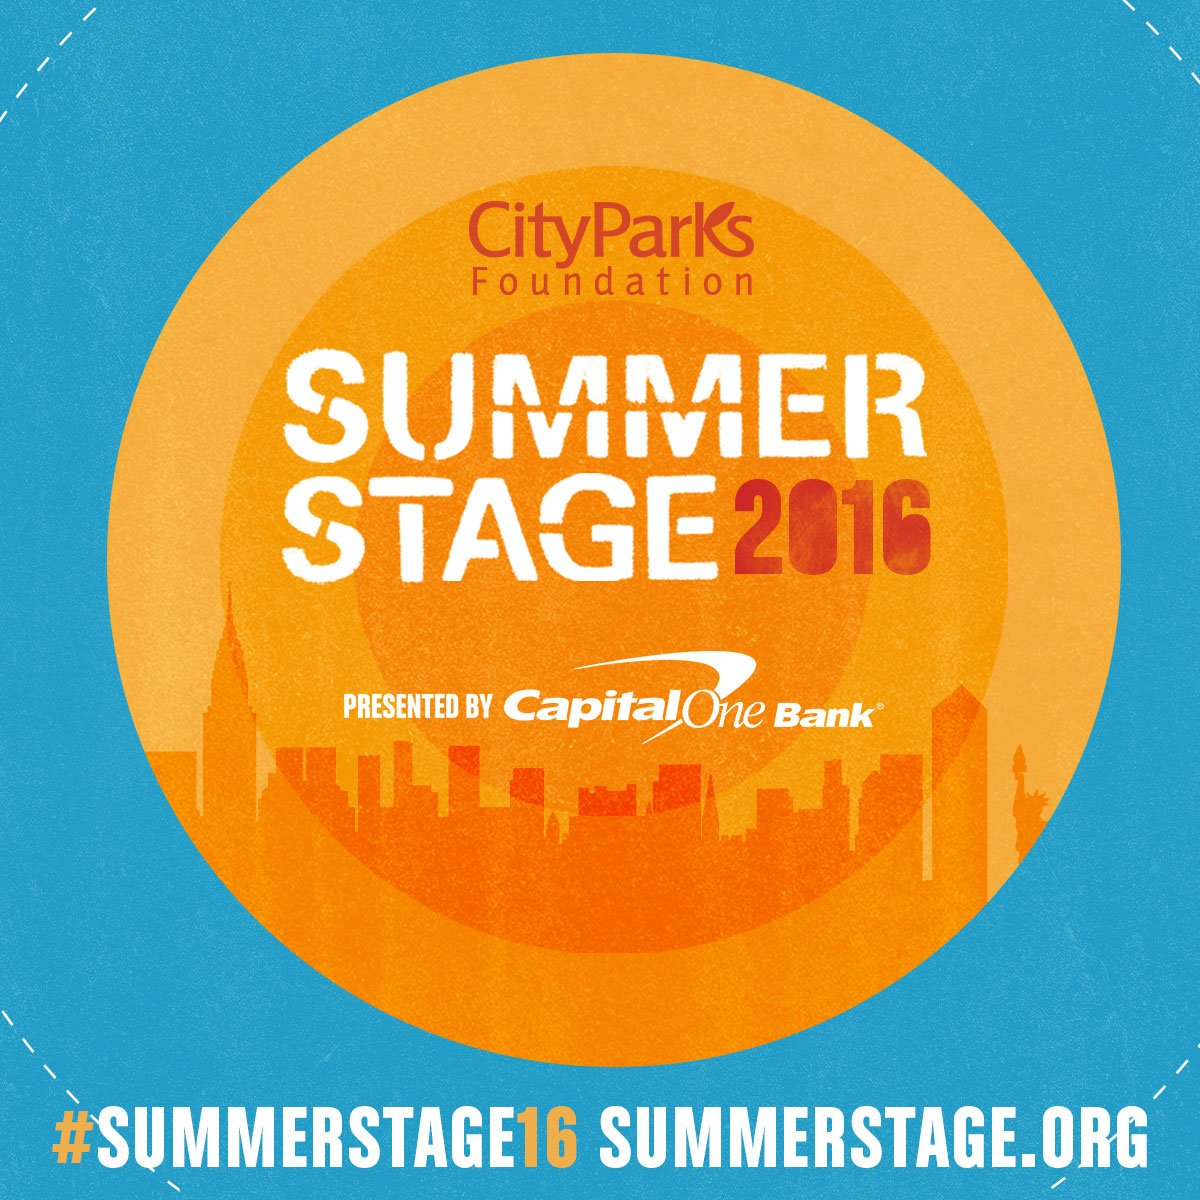 100+ Free Events. 200+ Artists. 16 #NYC Parks. View the #SummerStage16 schedule NOW! https://t.co/OX2eJlIv1Z https://t.co/KiqH5uiEUt